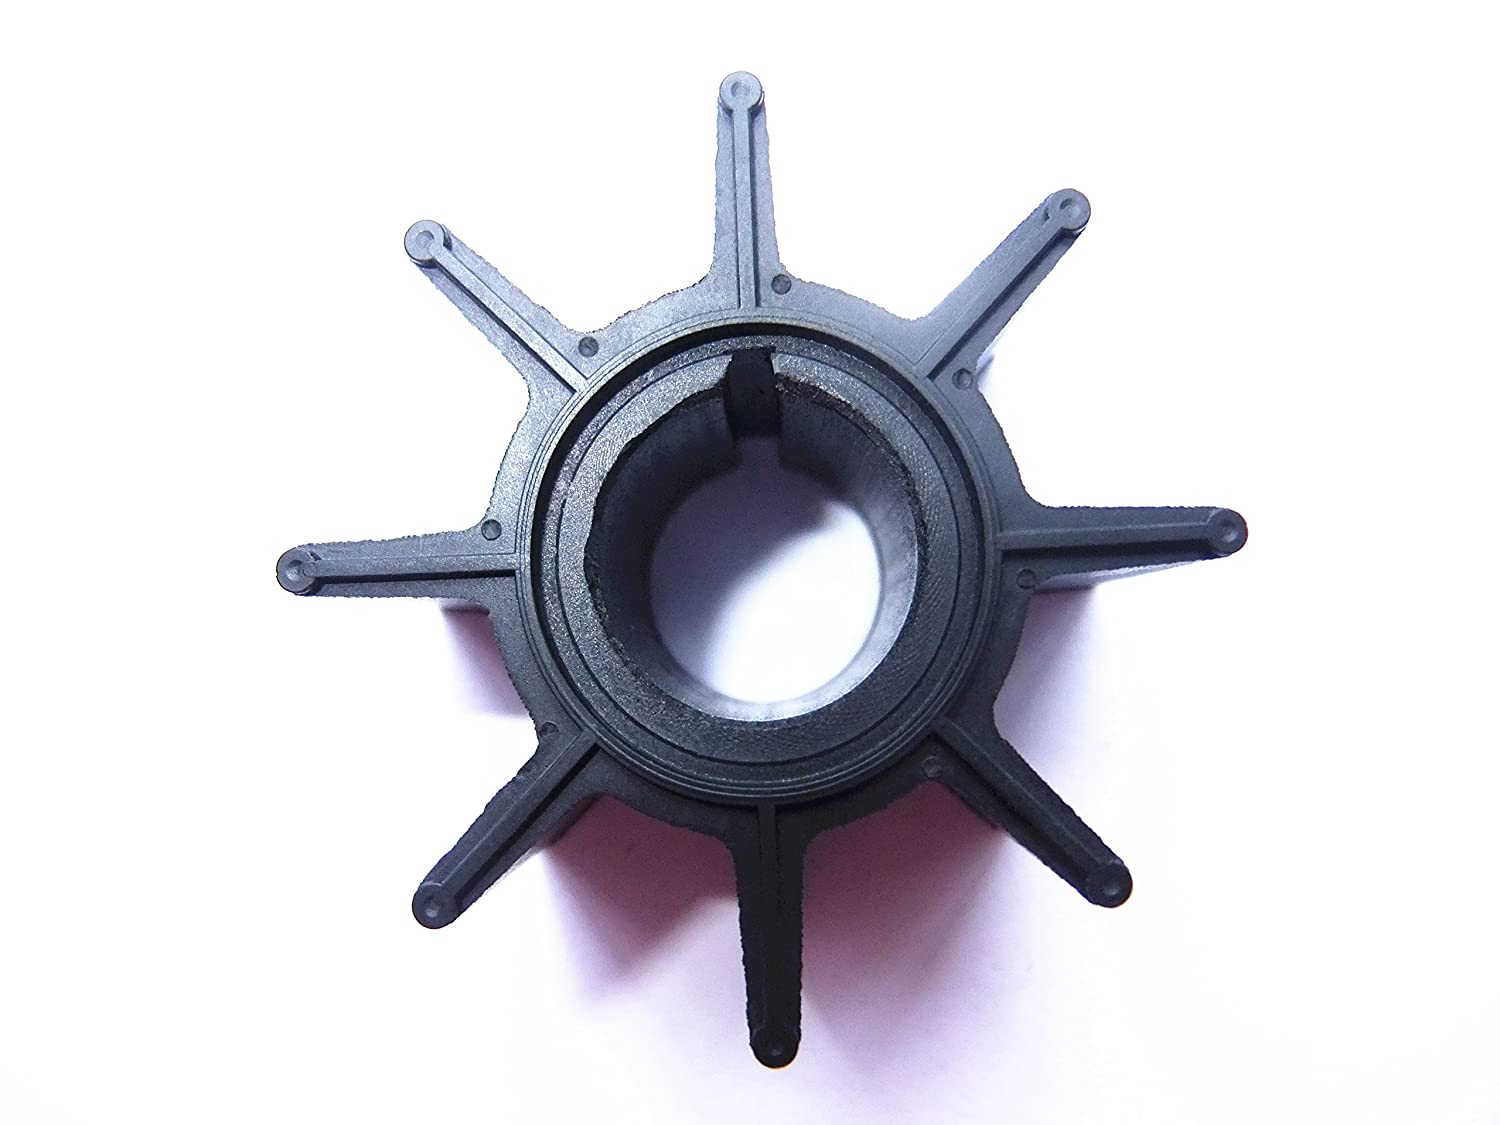 Outboard Impeller 334-65021-0 18-8921 for Tohatsu Nissan 9.9HP 15HP 18HP 20HP Outboard Motor SouthMarine